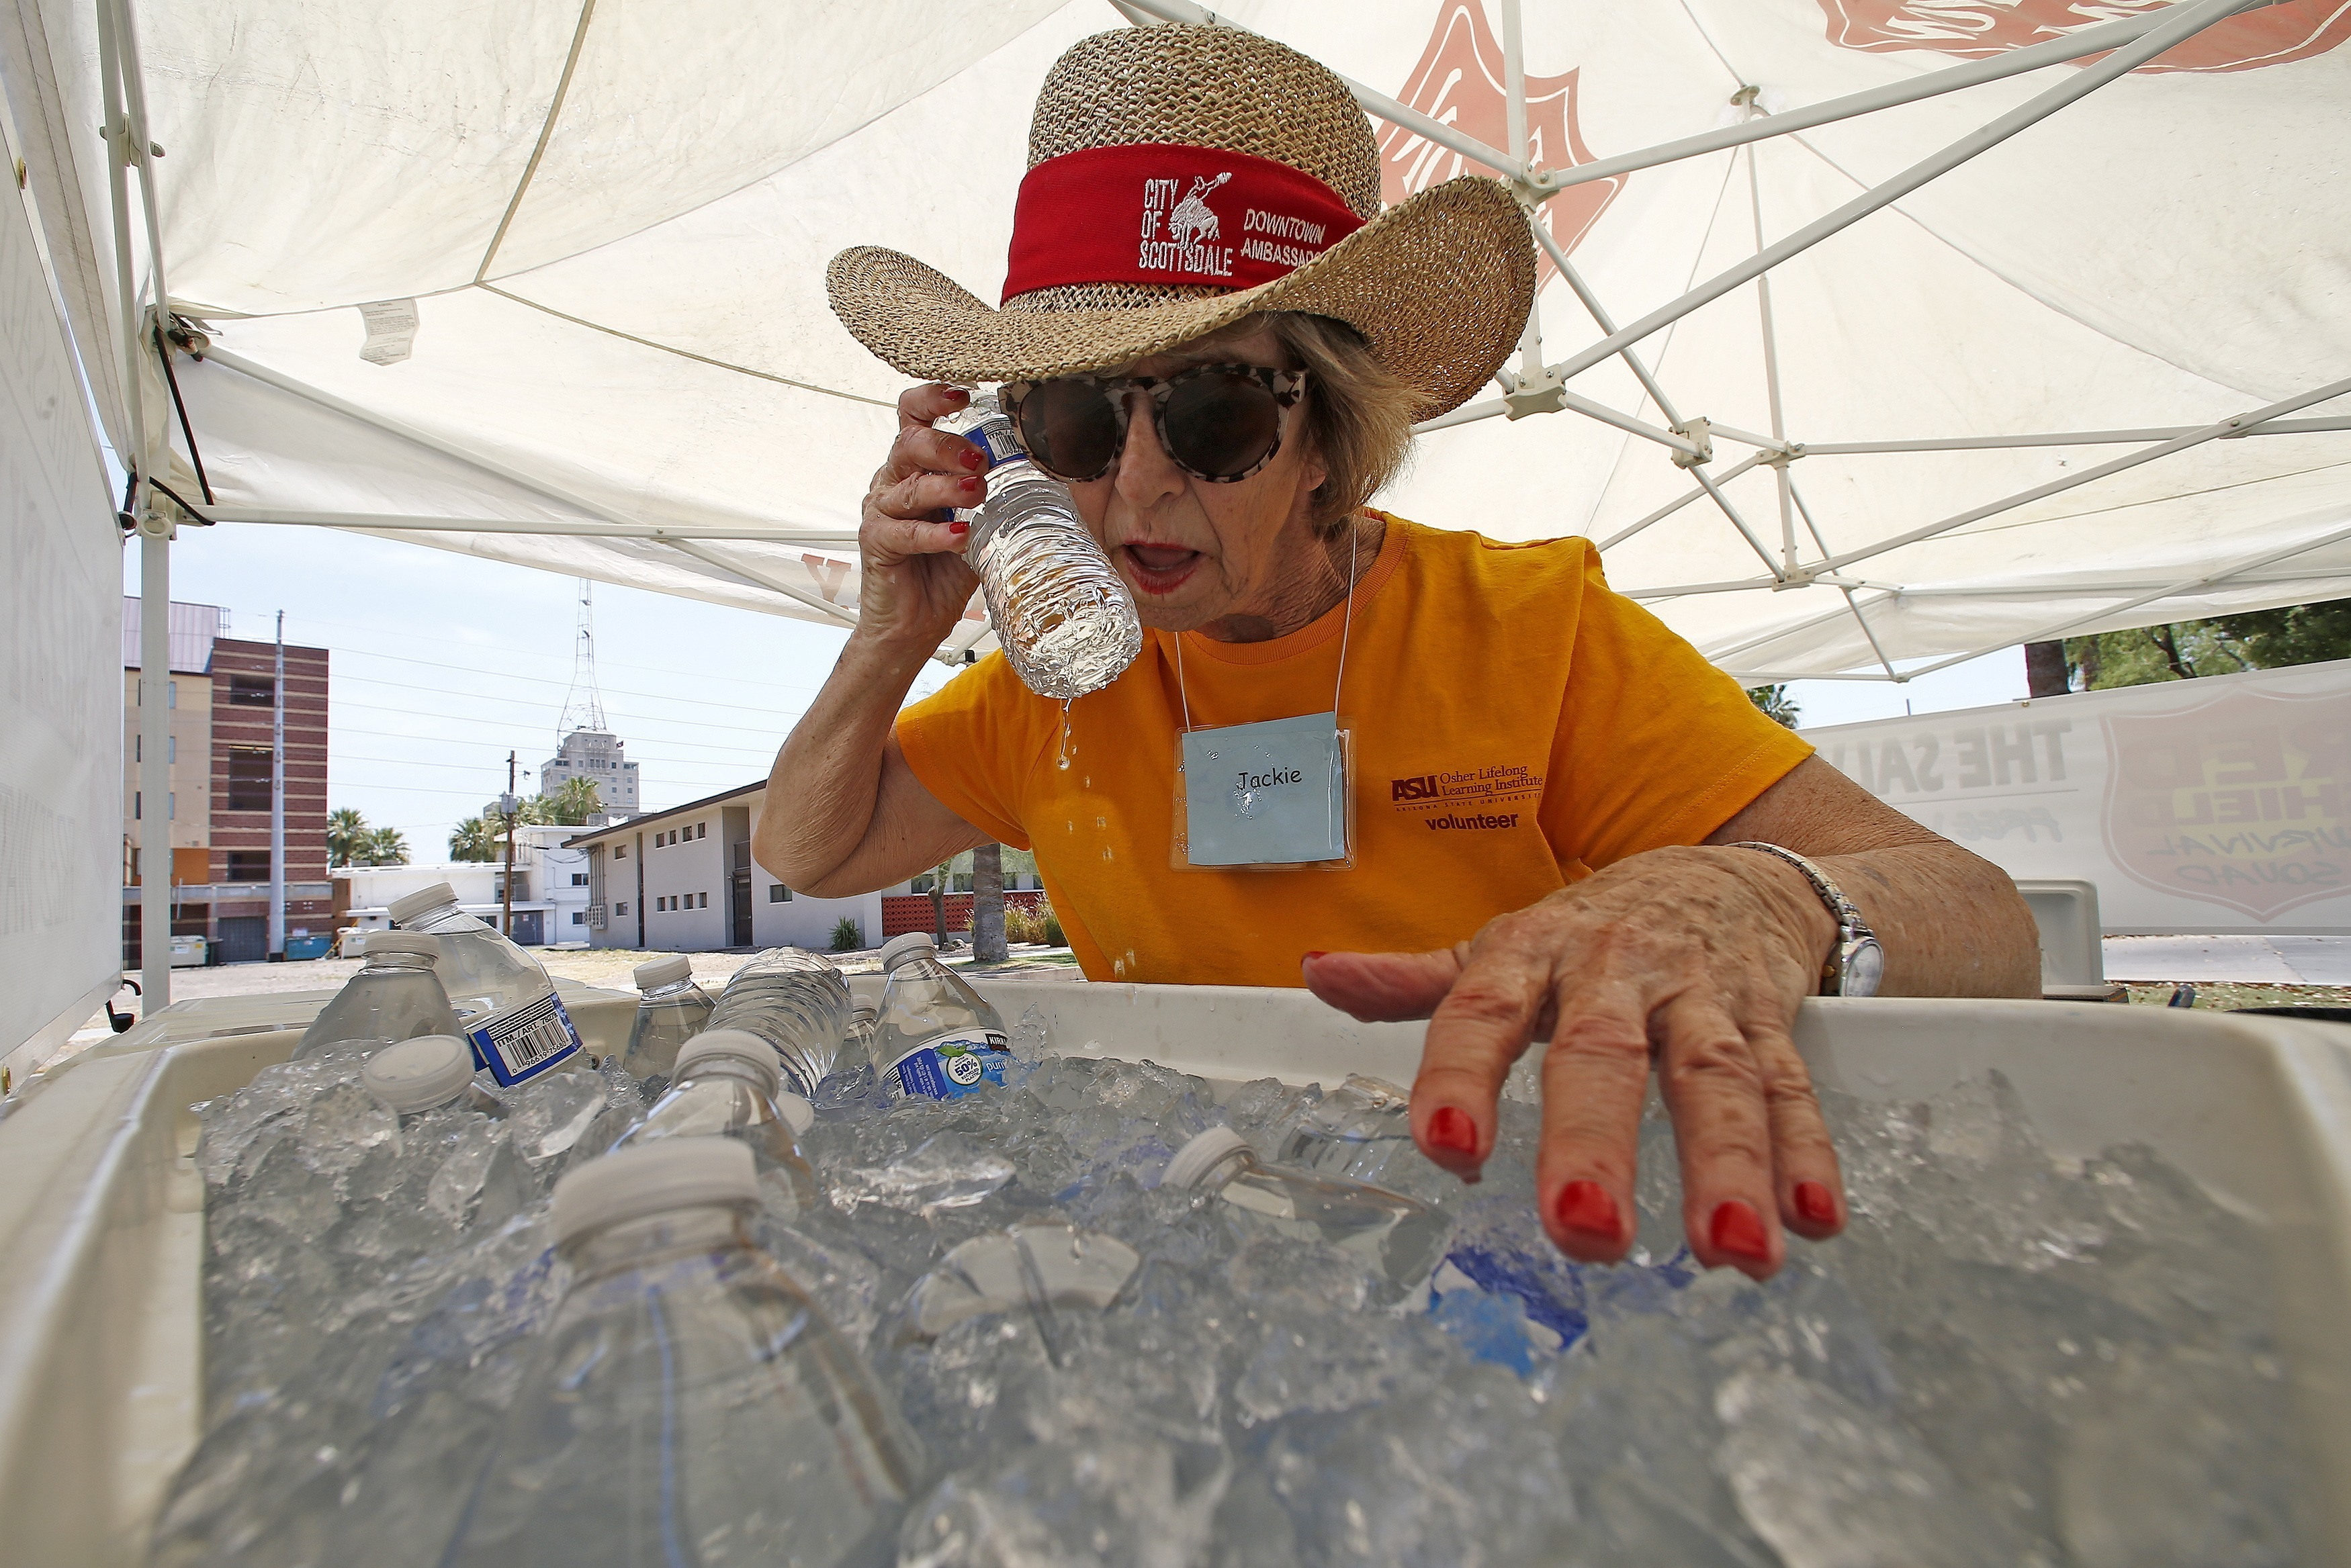 Salvation Army volunteer Jackie Rifkin tries to keep cool at she works at a special Salvation Army hydration station to help people try to keep hydrated and stay cool as temperatures climb to near-record highs, Monday, June 19, 2017, in Phoenix. (AP Photo/Ross D. Franklin)